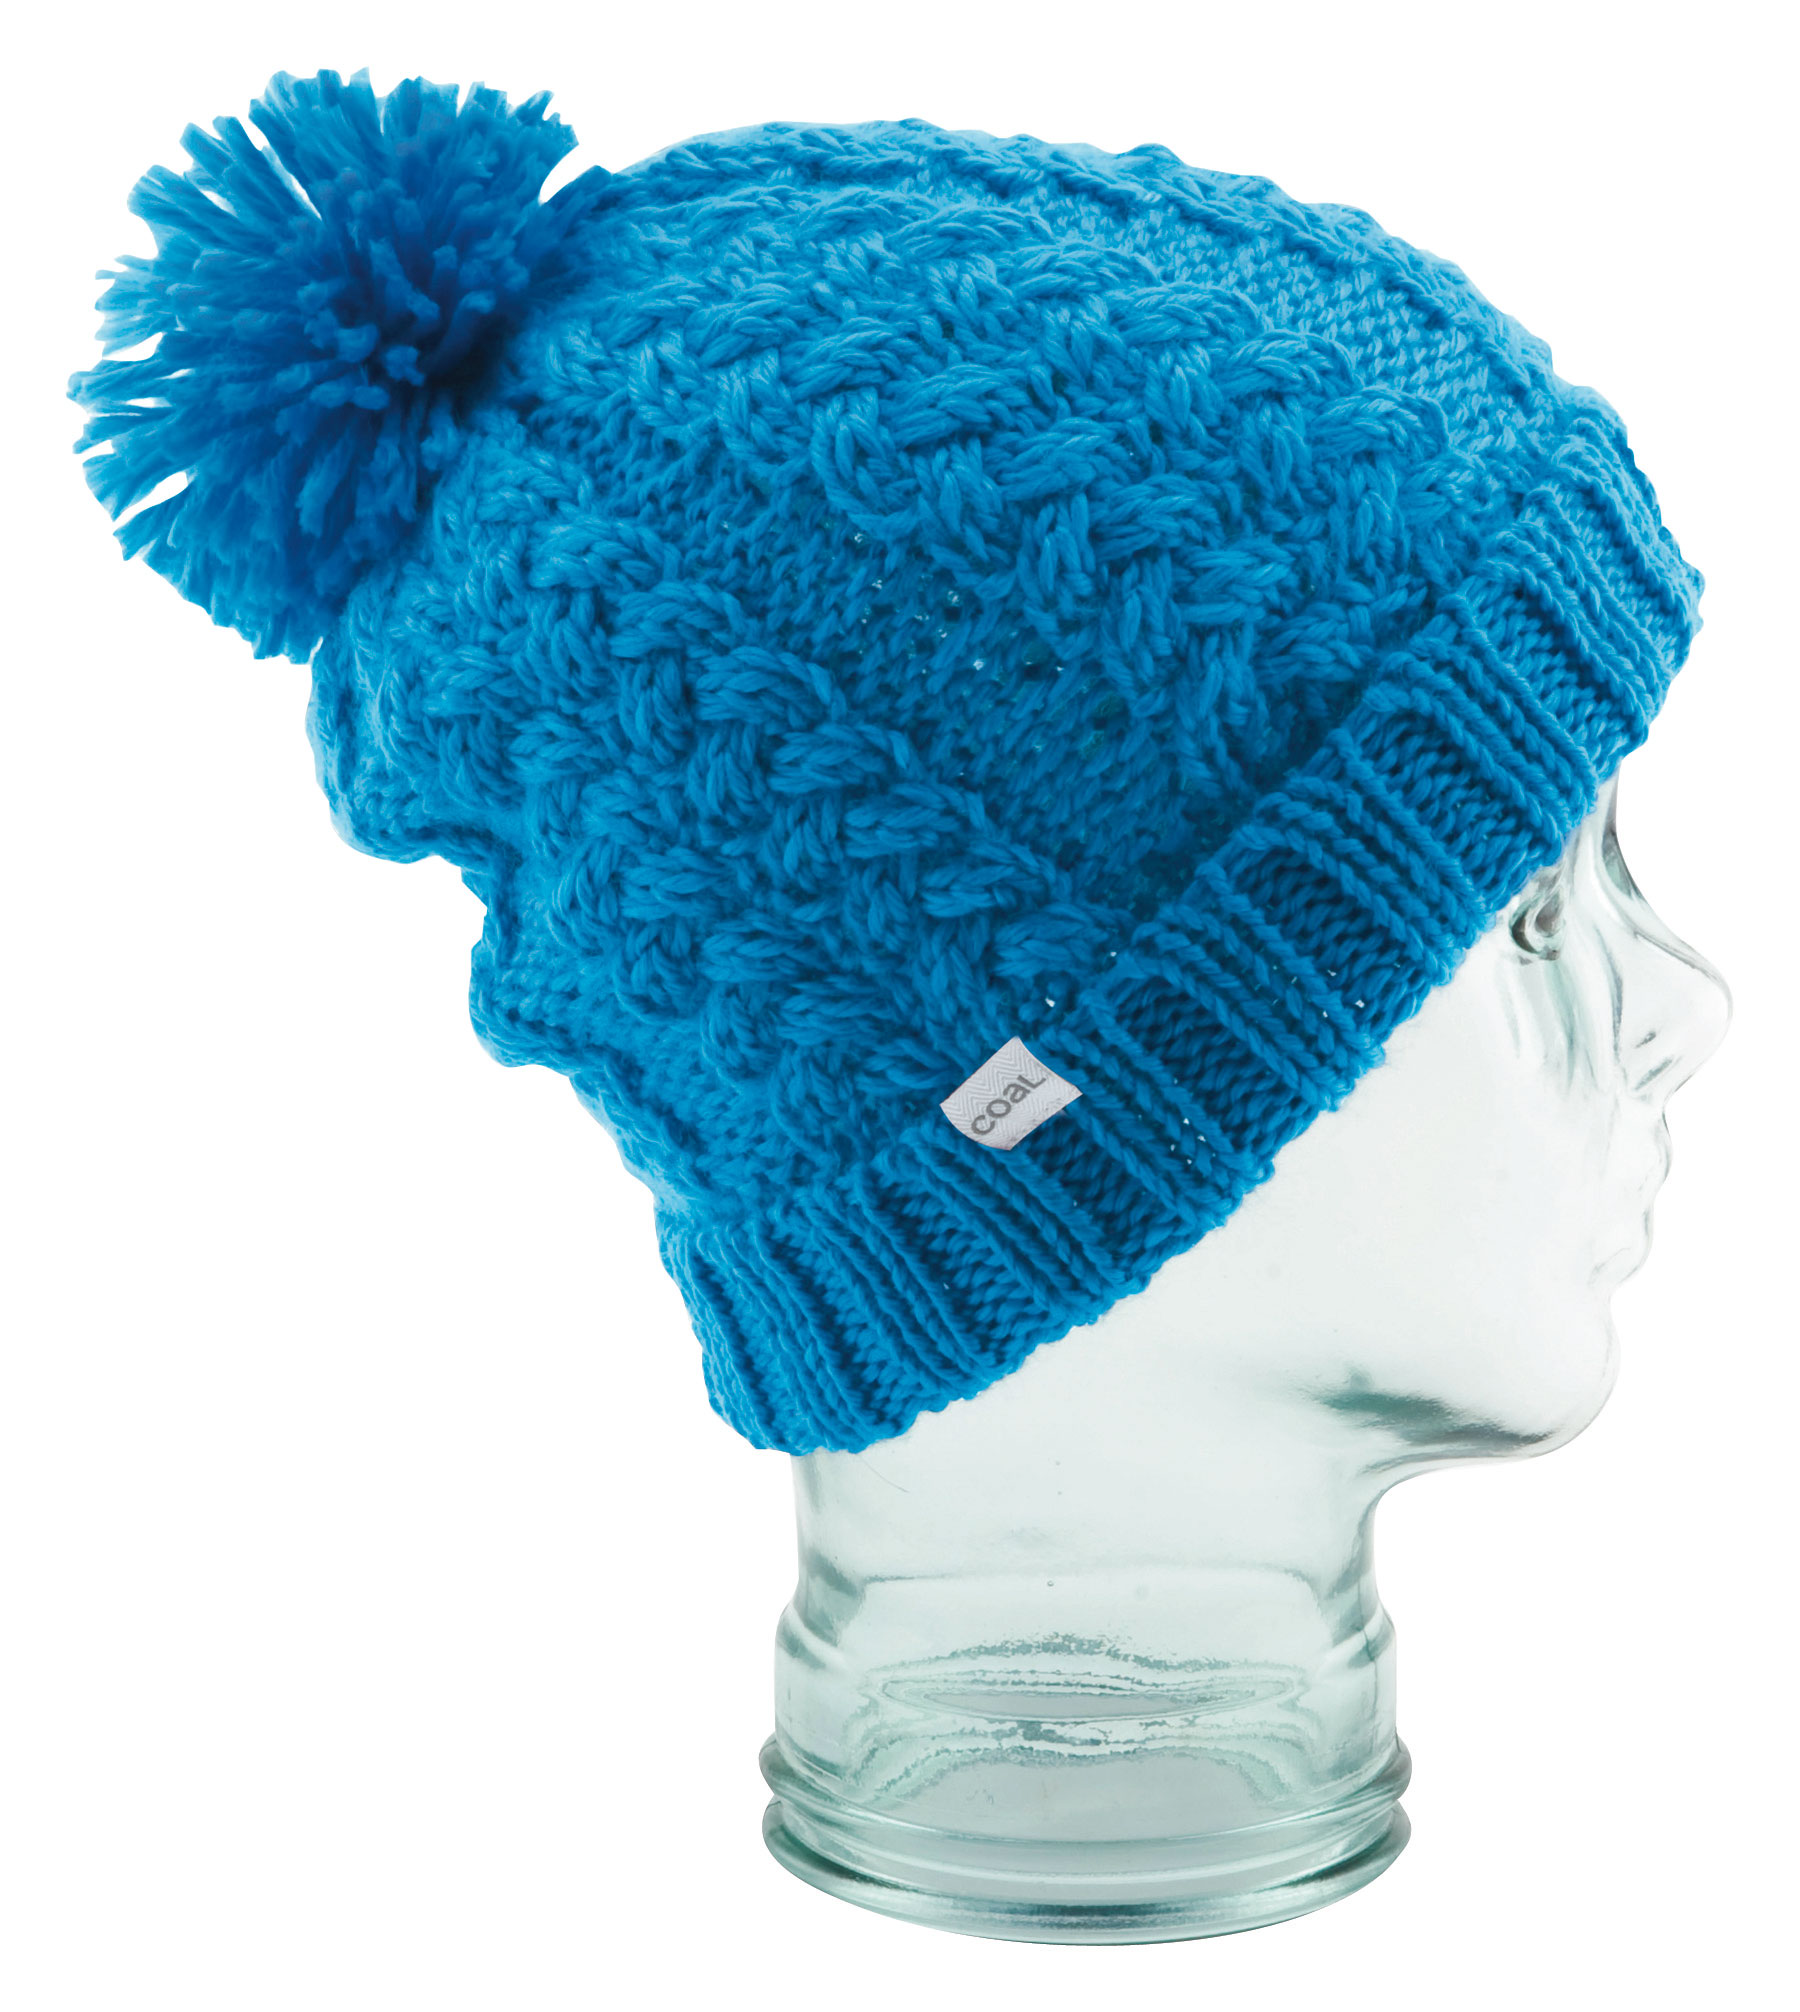 Playful, slightly oversized beanie with pom pom and rolled cuff for multiple wearing options. Made from silky acrylic.  Slightly oversized beanie   Pom-Poms    Rolled Cuff   Silky Acrylic - $16.95